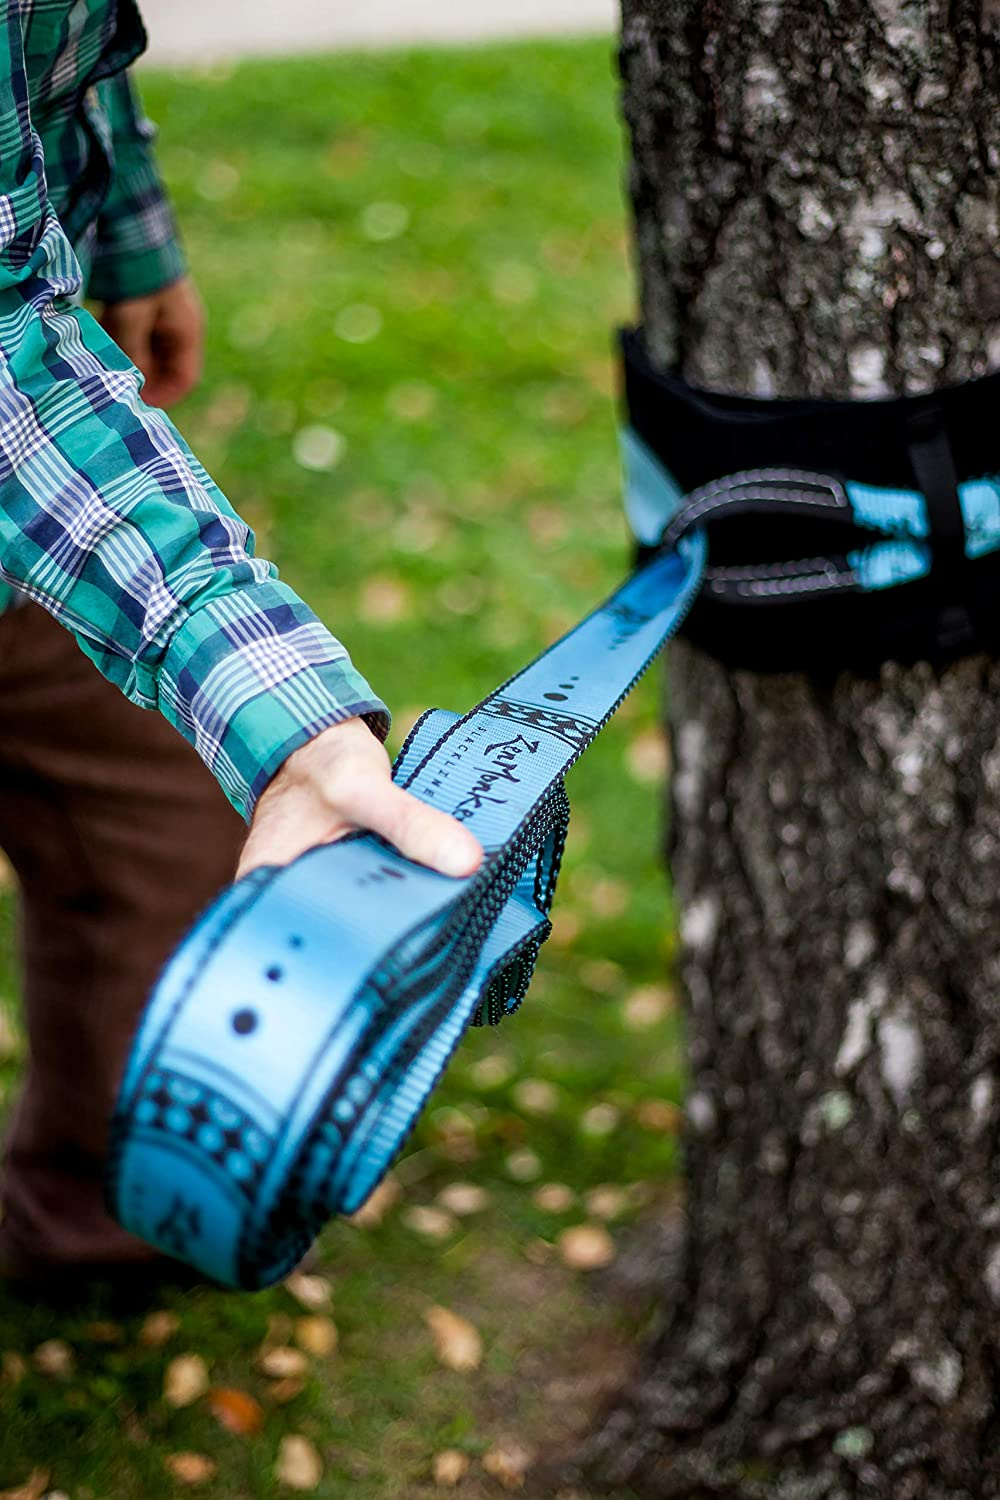 ZenMonkey Slackline Kit with Training Line, Arm Trainer, Tree Protectors, Cloth Carry Bag and Instructions, 60 Foot - Easy Setup for the Family, Kids ...